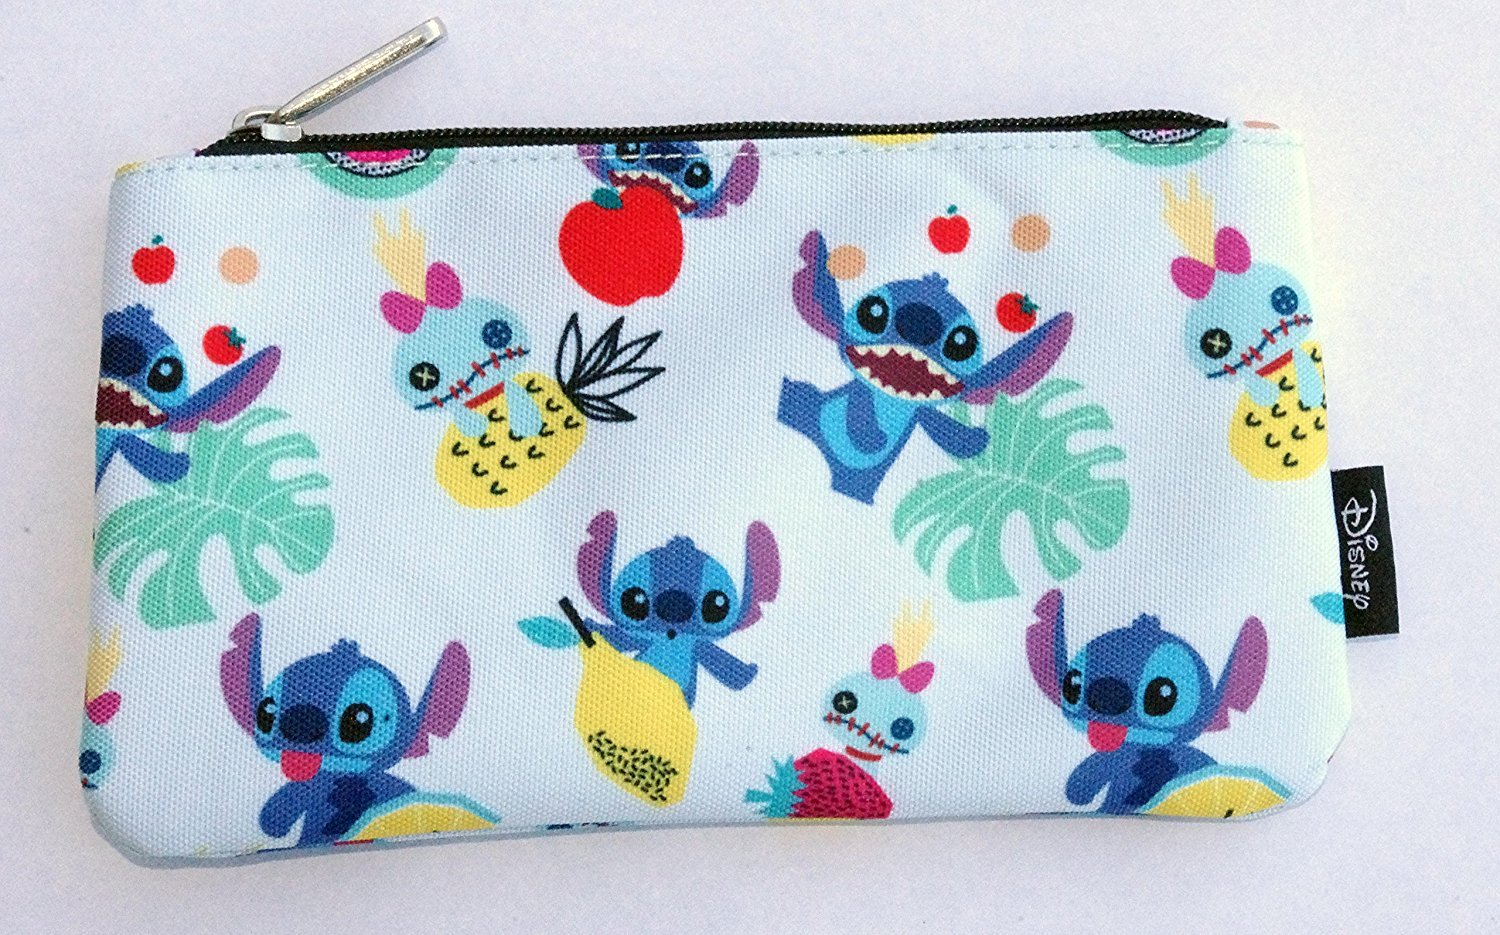 Loungefly Stitch Scrump Fruit AOP Pencil Case by Loungefly